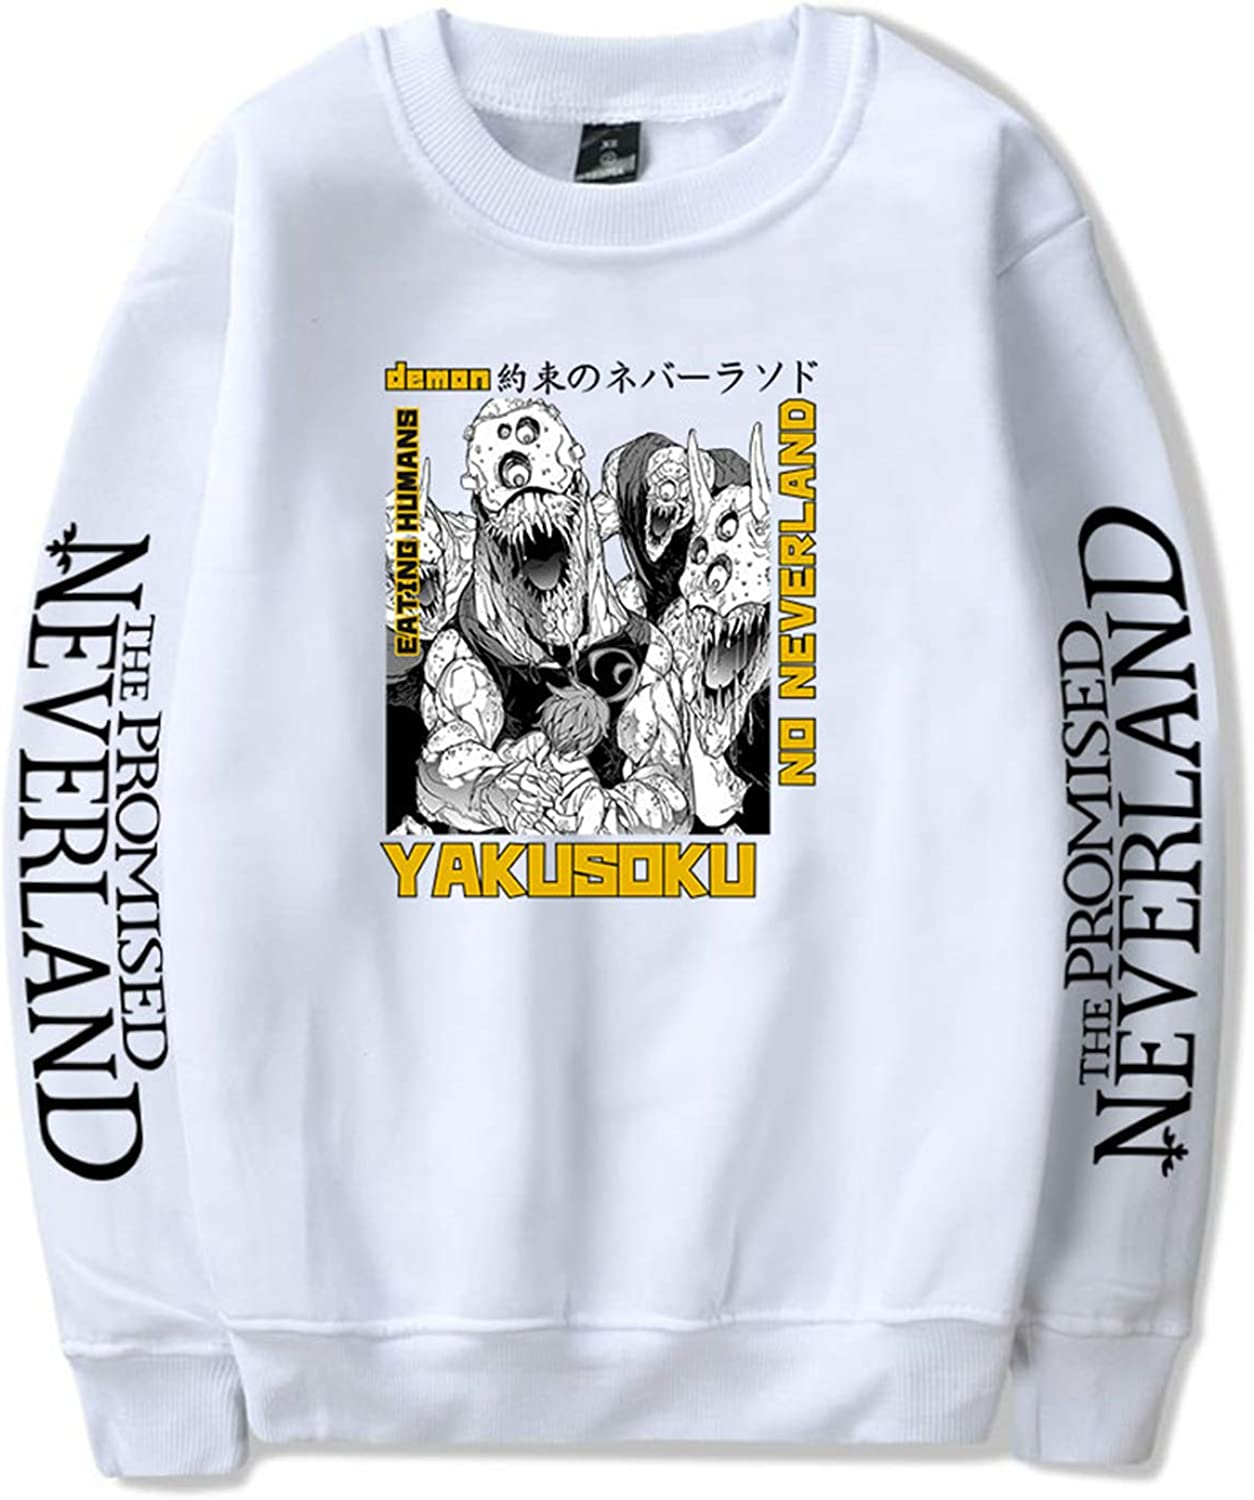 Special price for a limited time New The Promised Neverland Sweatshirt Factory outlet Man